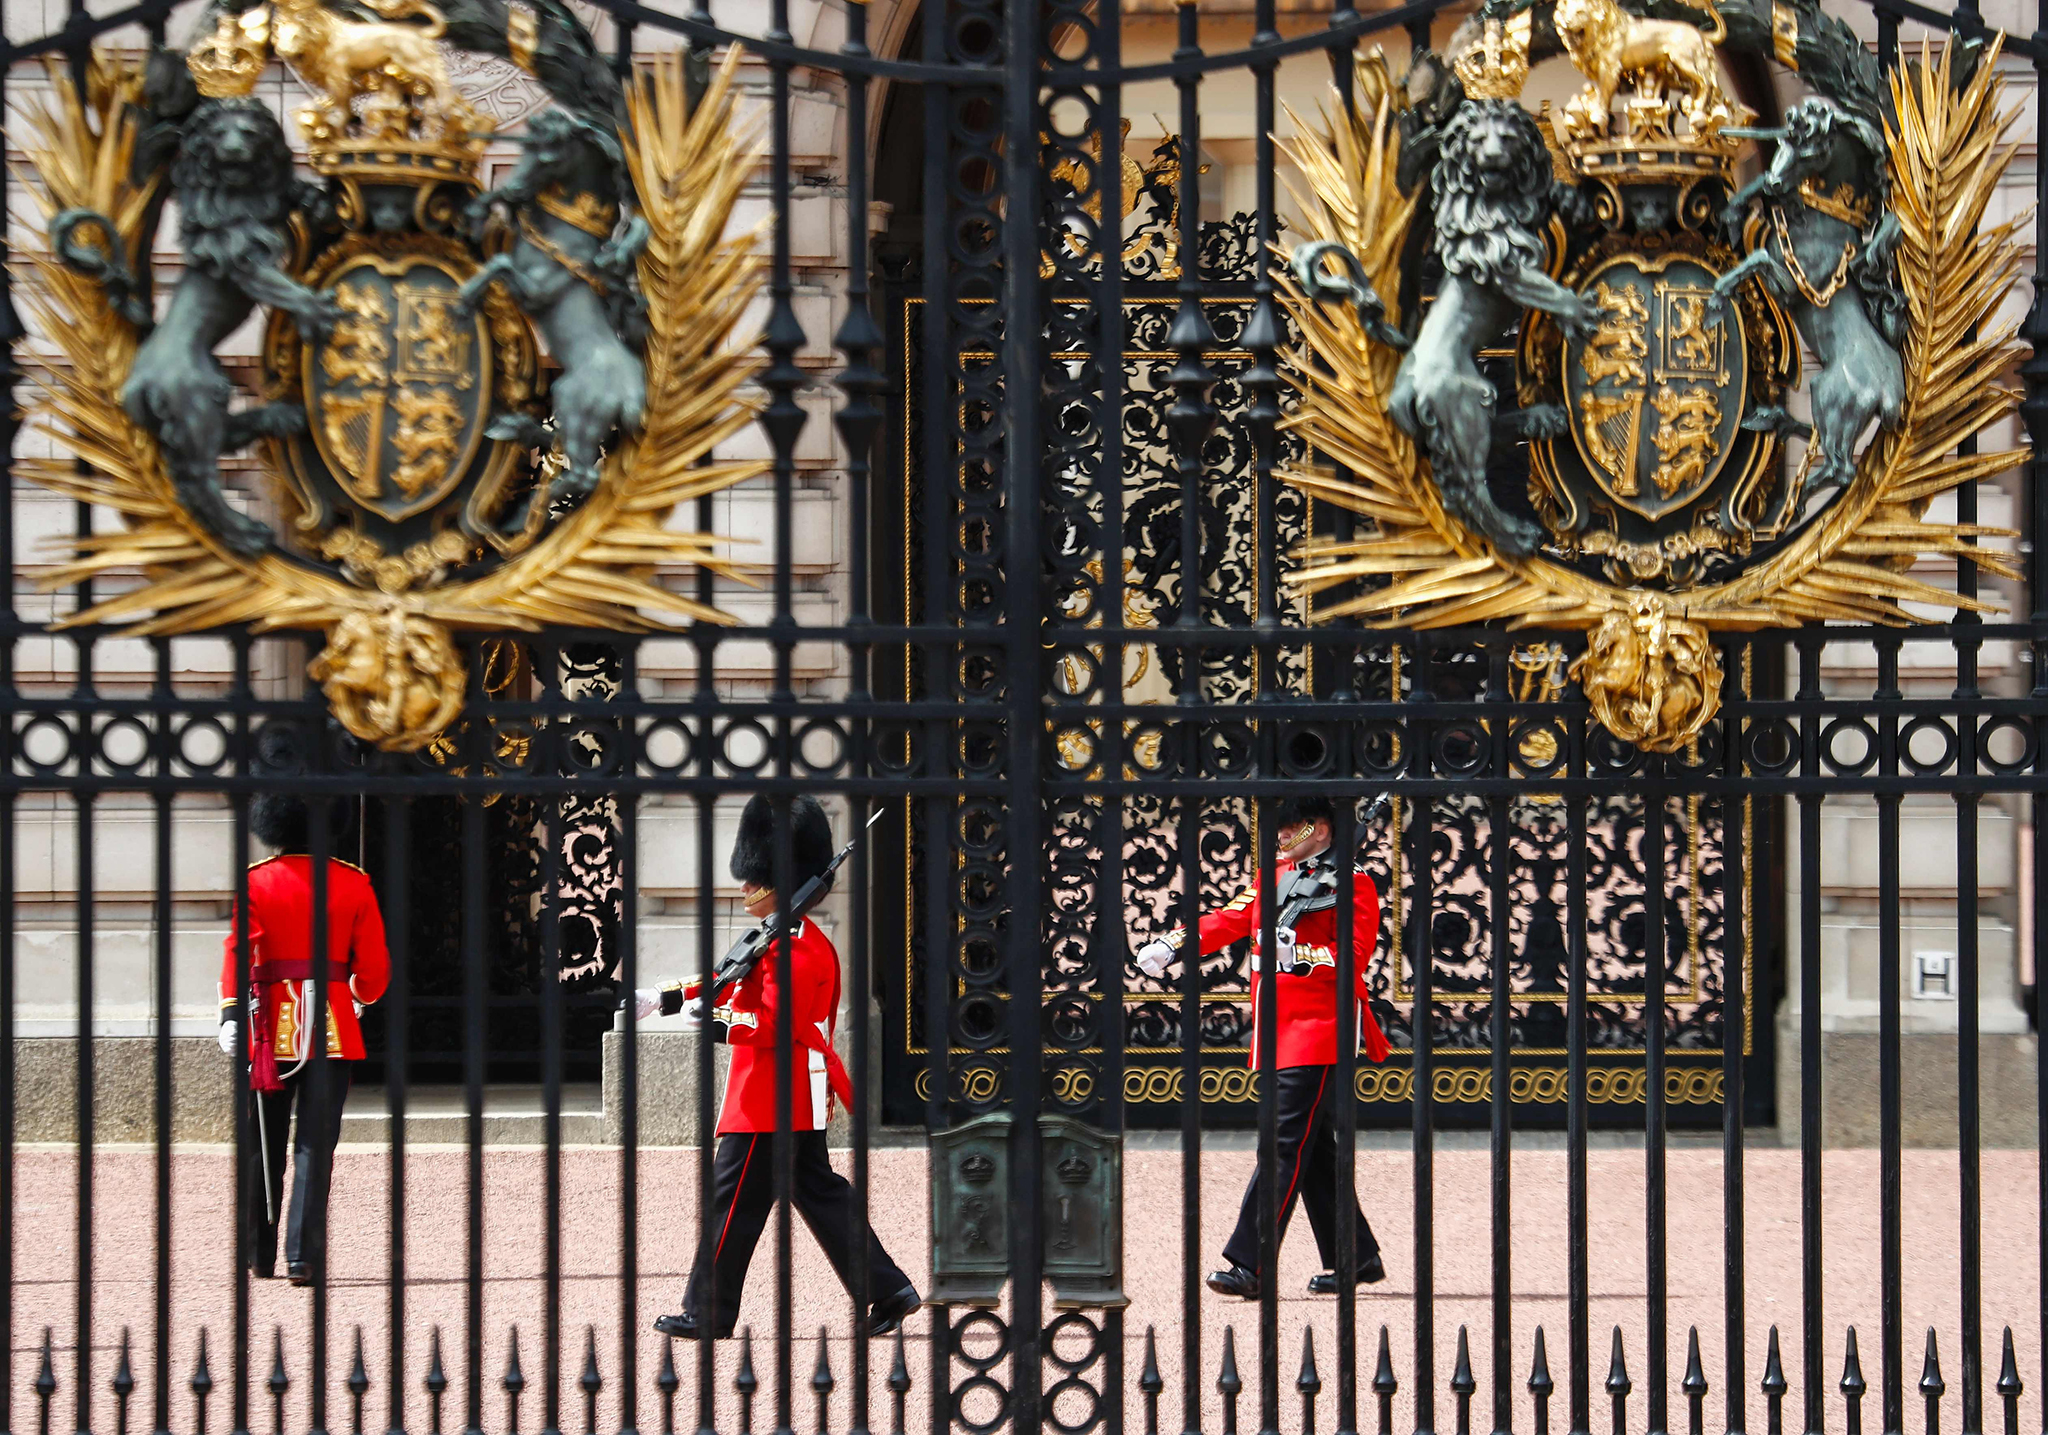 Changing of the Guard ceremony take place outside Buckingham Palace in central London on June 26, 2016. / AFP PHOTO / Odd ANDERSENODD ANDERSEN/AFP/Getty Images